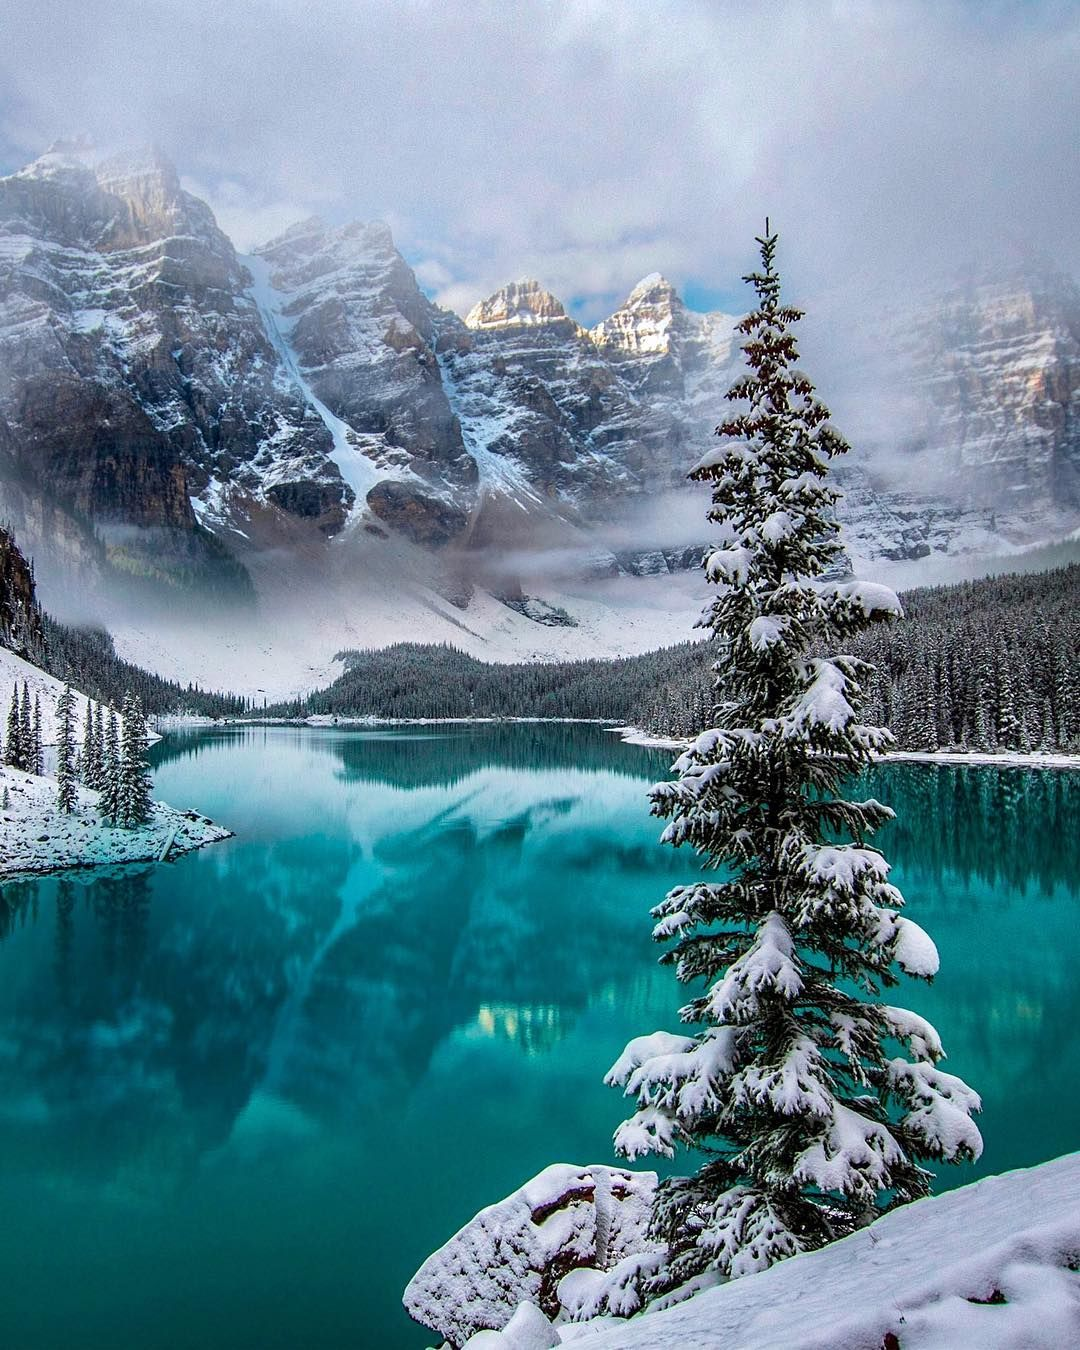 Stunning Reflected Landscapes Capture Beauty Of Alberta Nature Winter Scenery